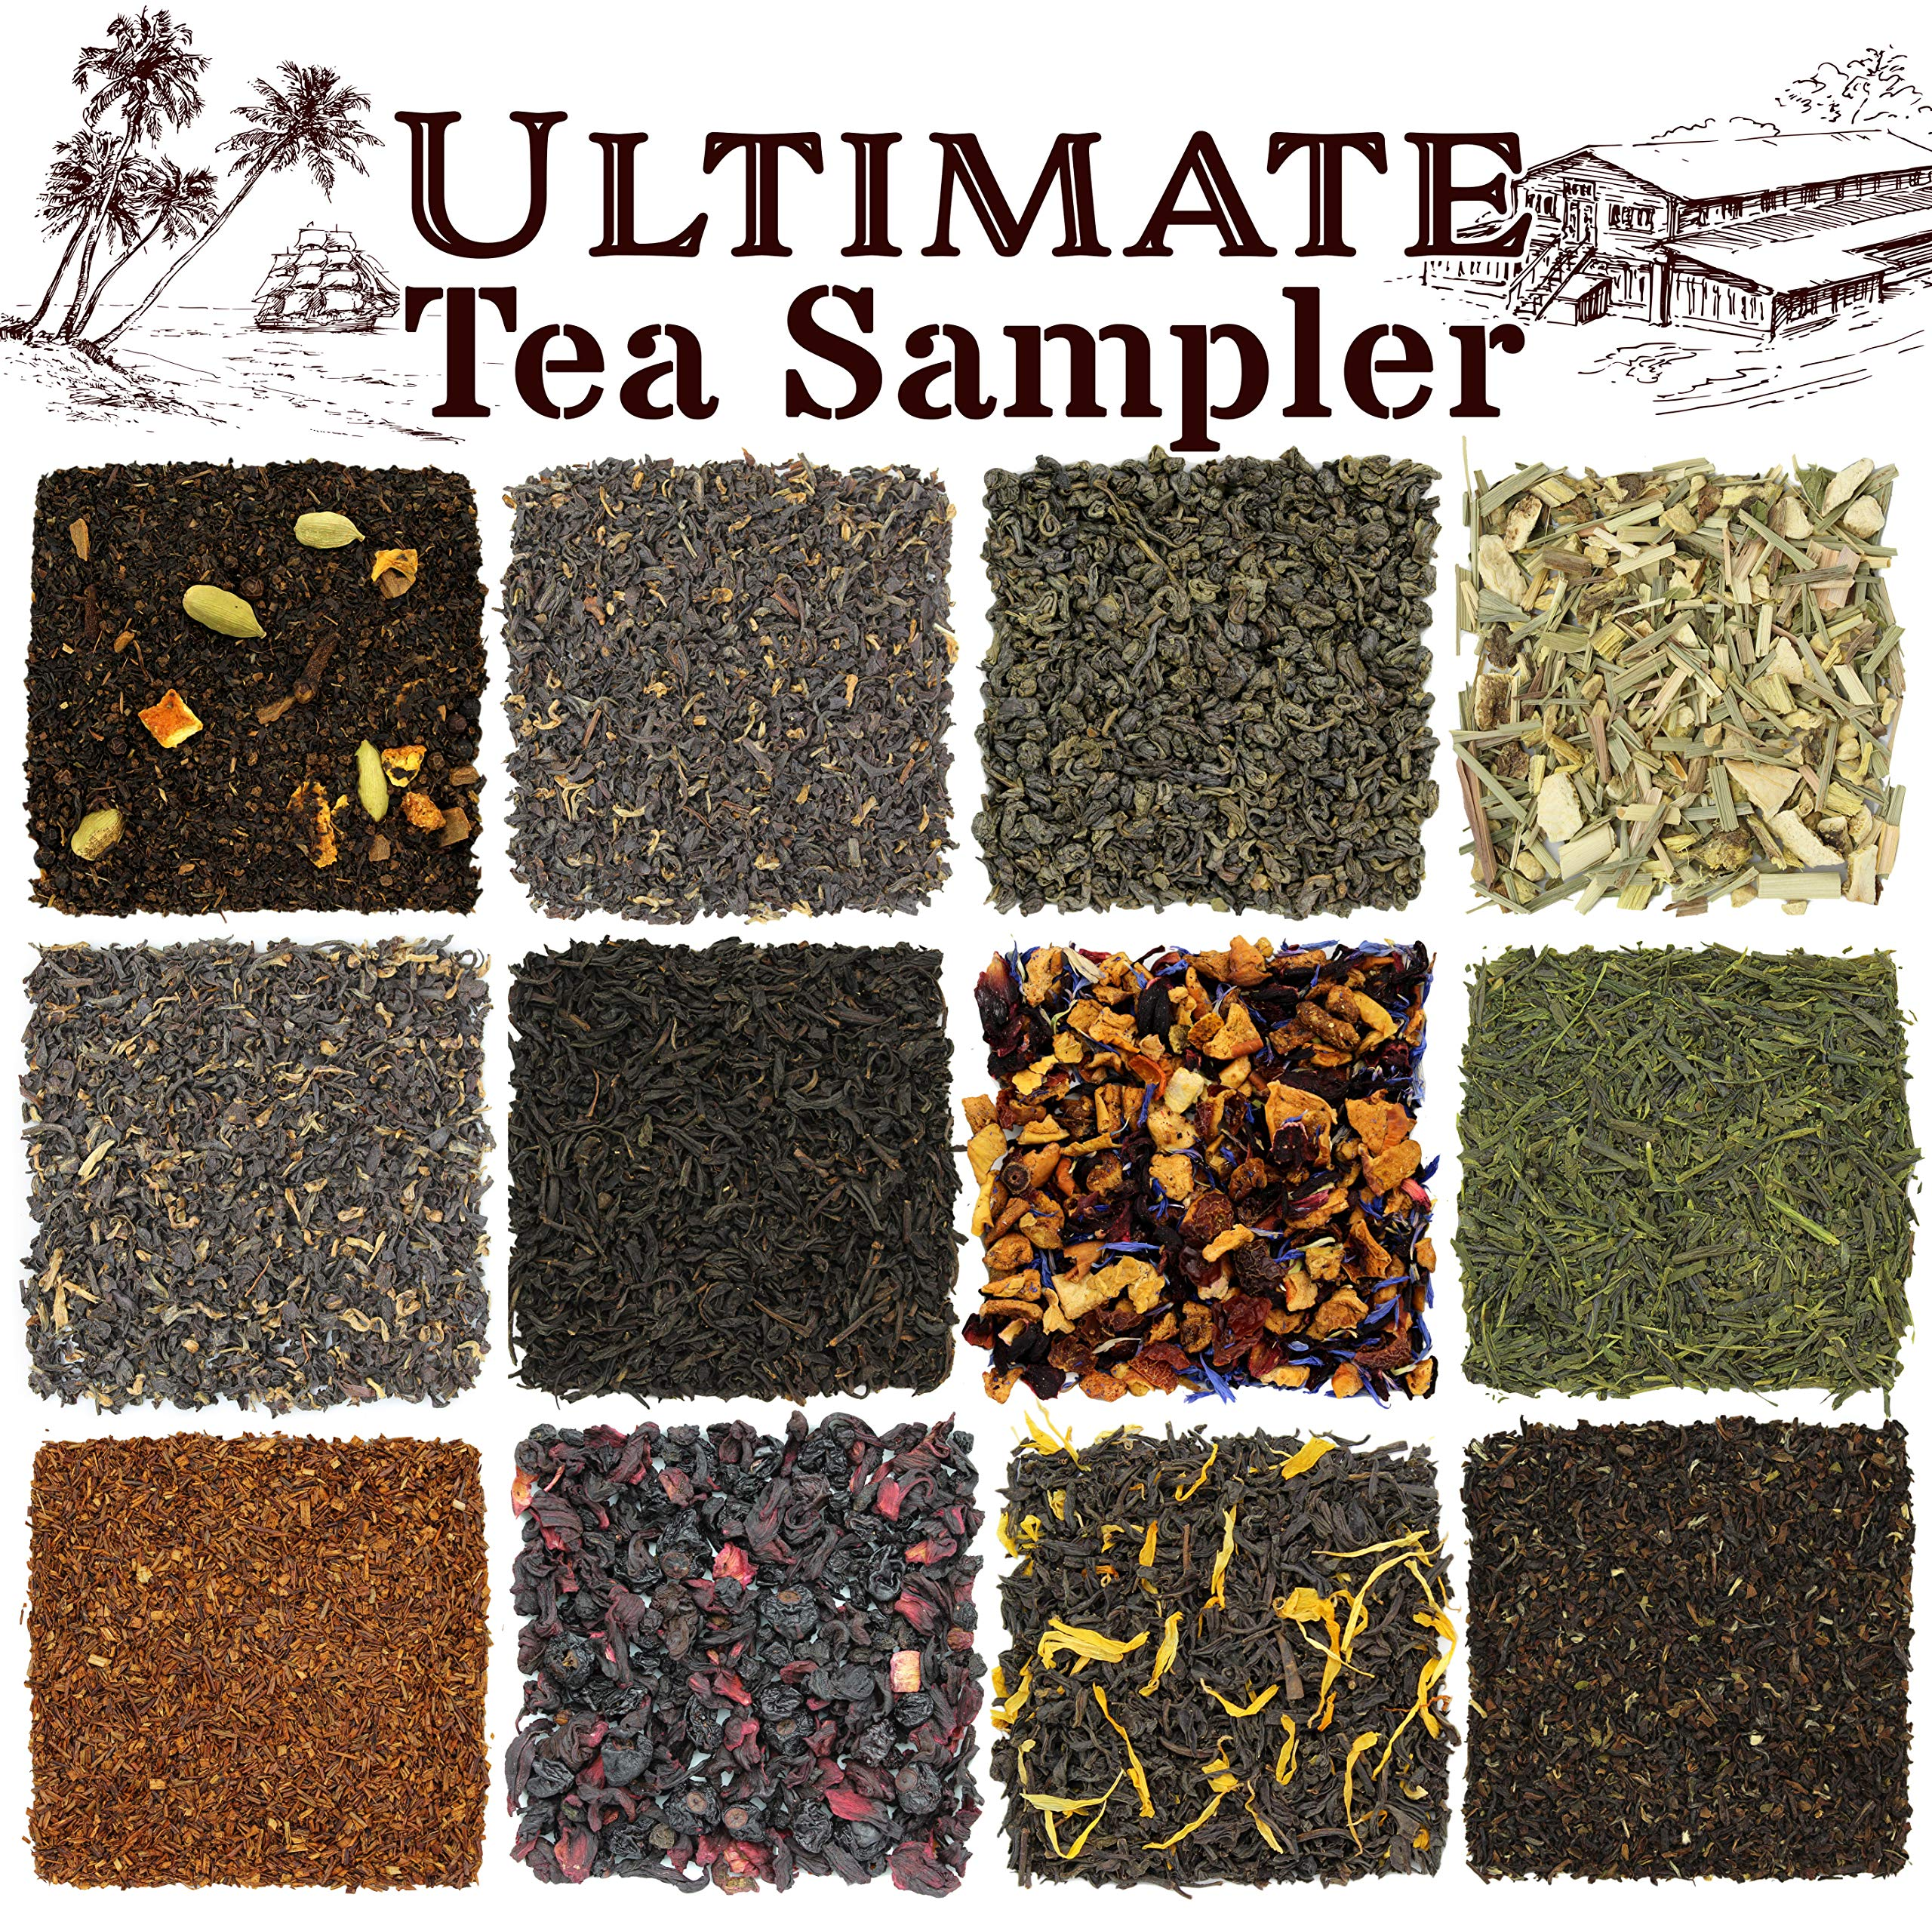 Solstice Loose Leaf Tea Ultimate Sampler Feat. 12 Teas; Sencha & Gunpowder Green Tea, Masala Chai Black Tea, Rooibos Herbal Tea, And More! Approx 180+ Servings by Solstice Tea Traders